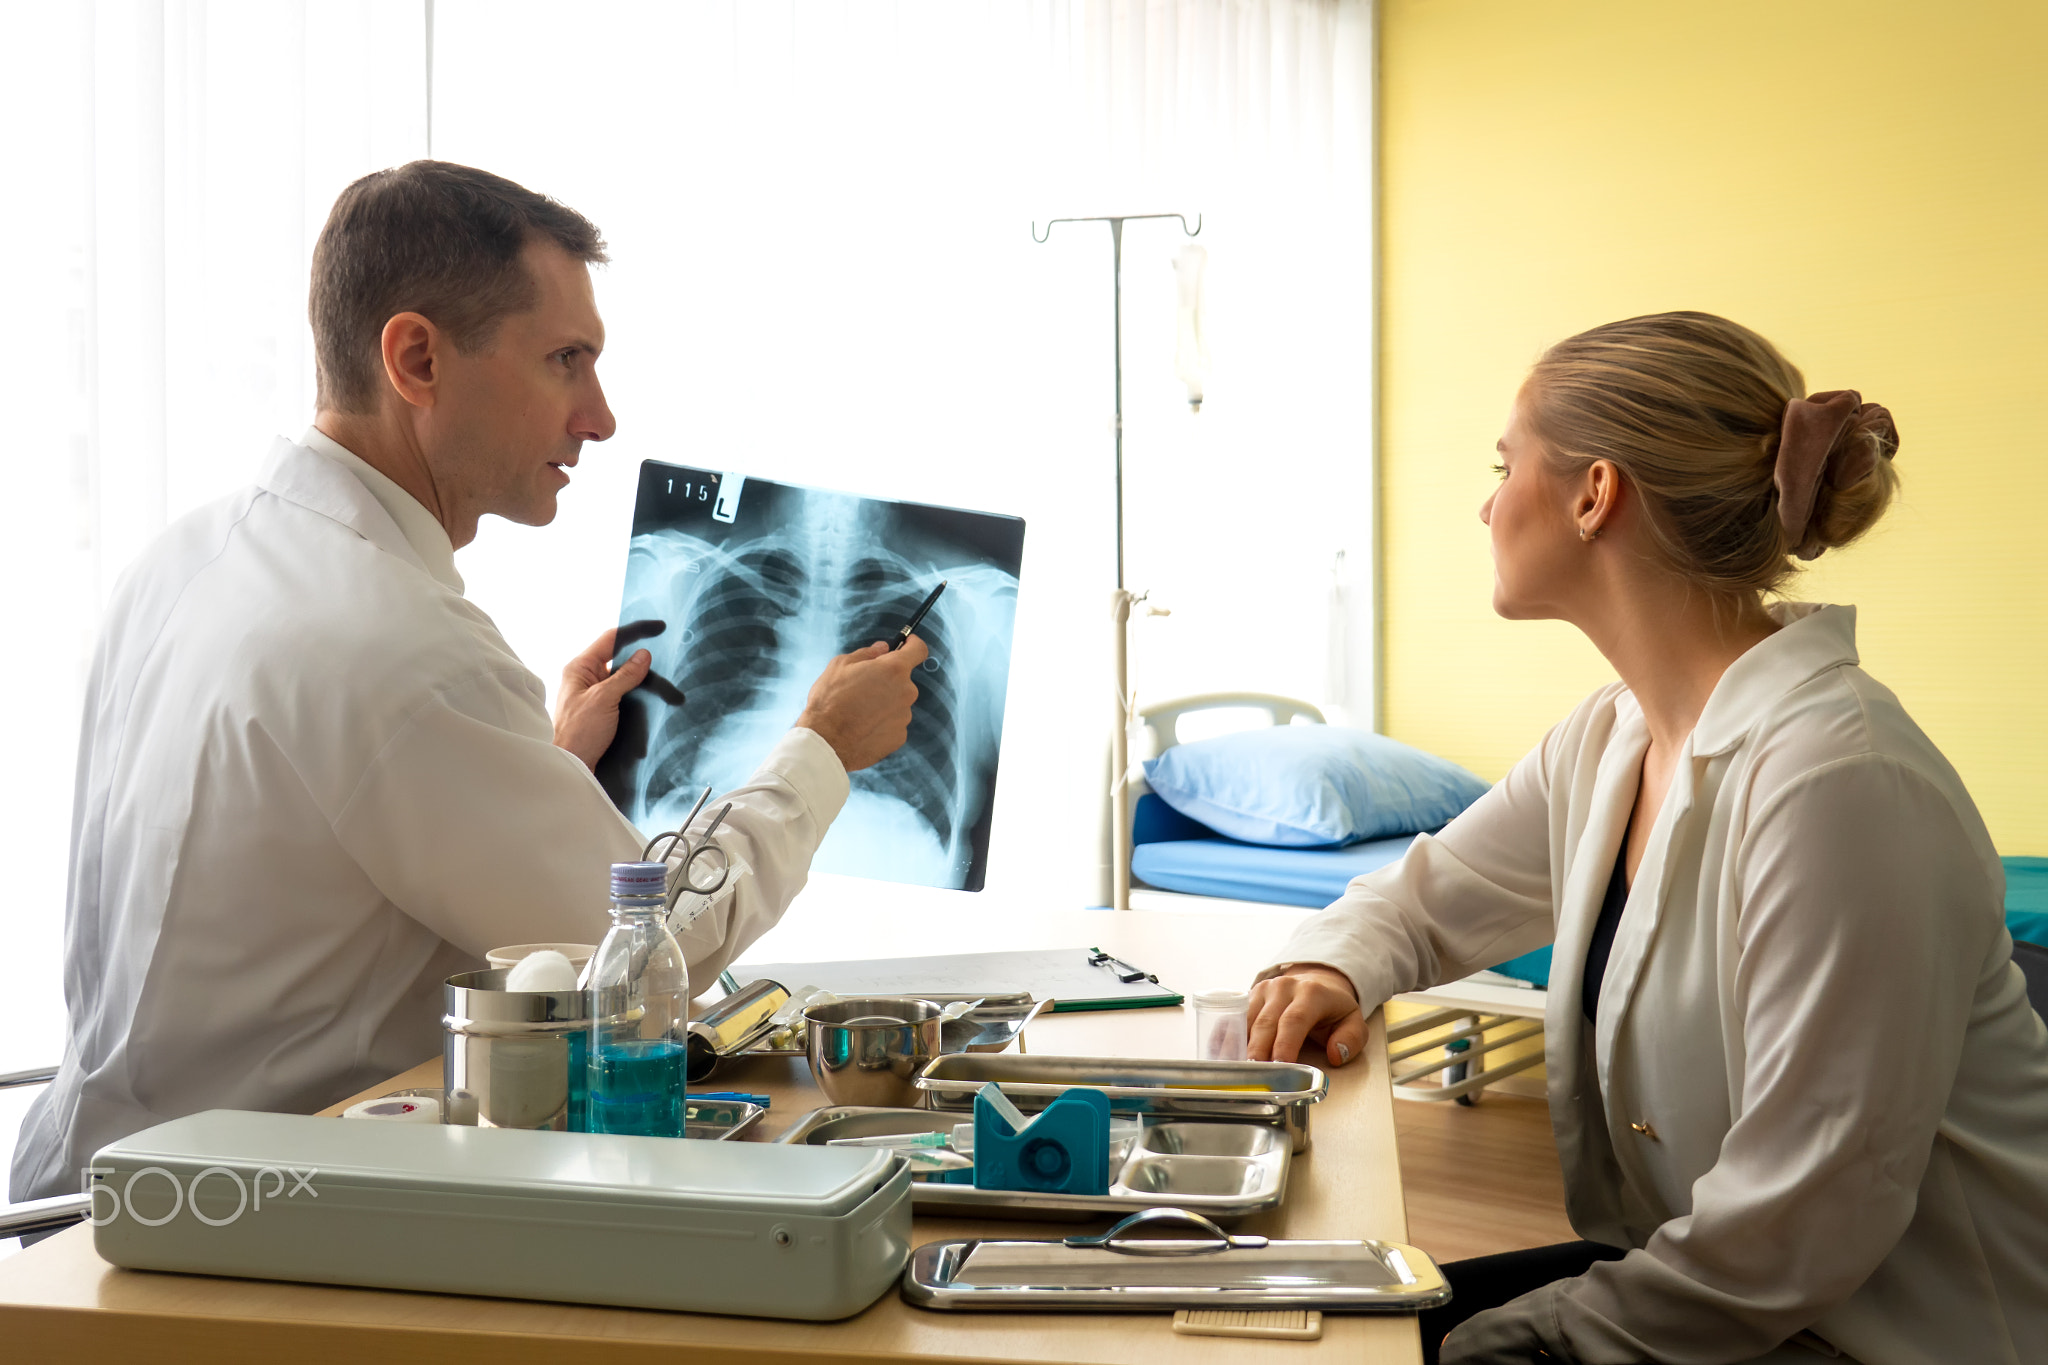 doctor explaining x-ray result to women patient